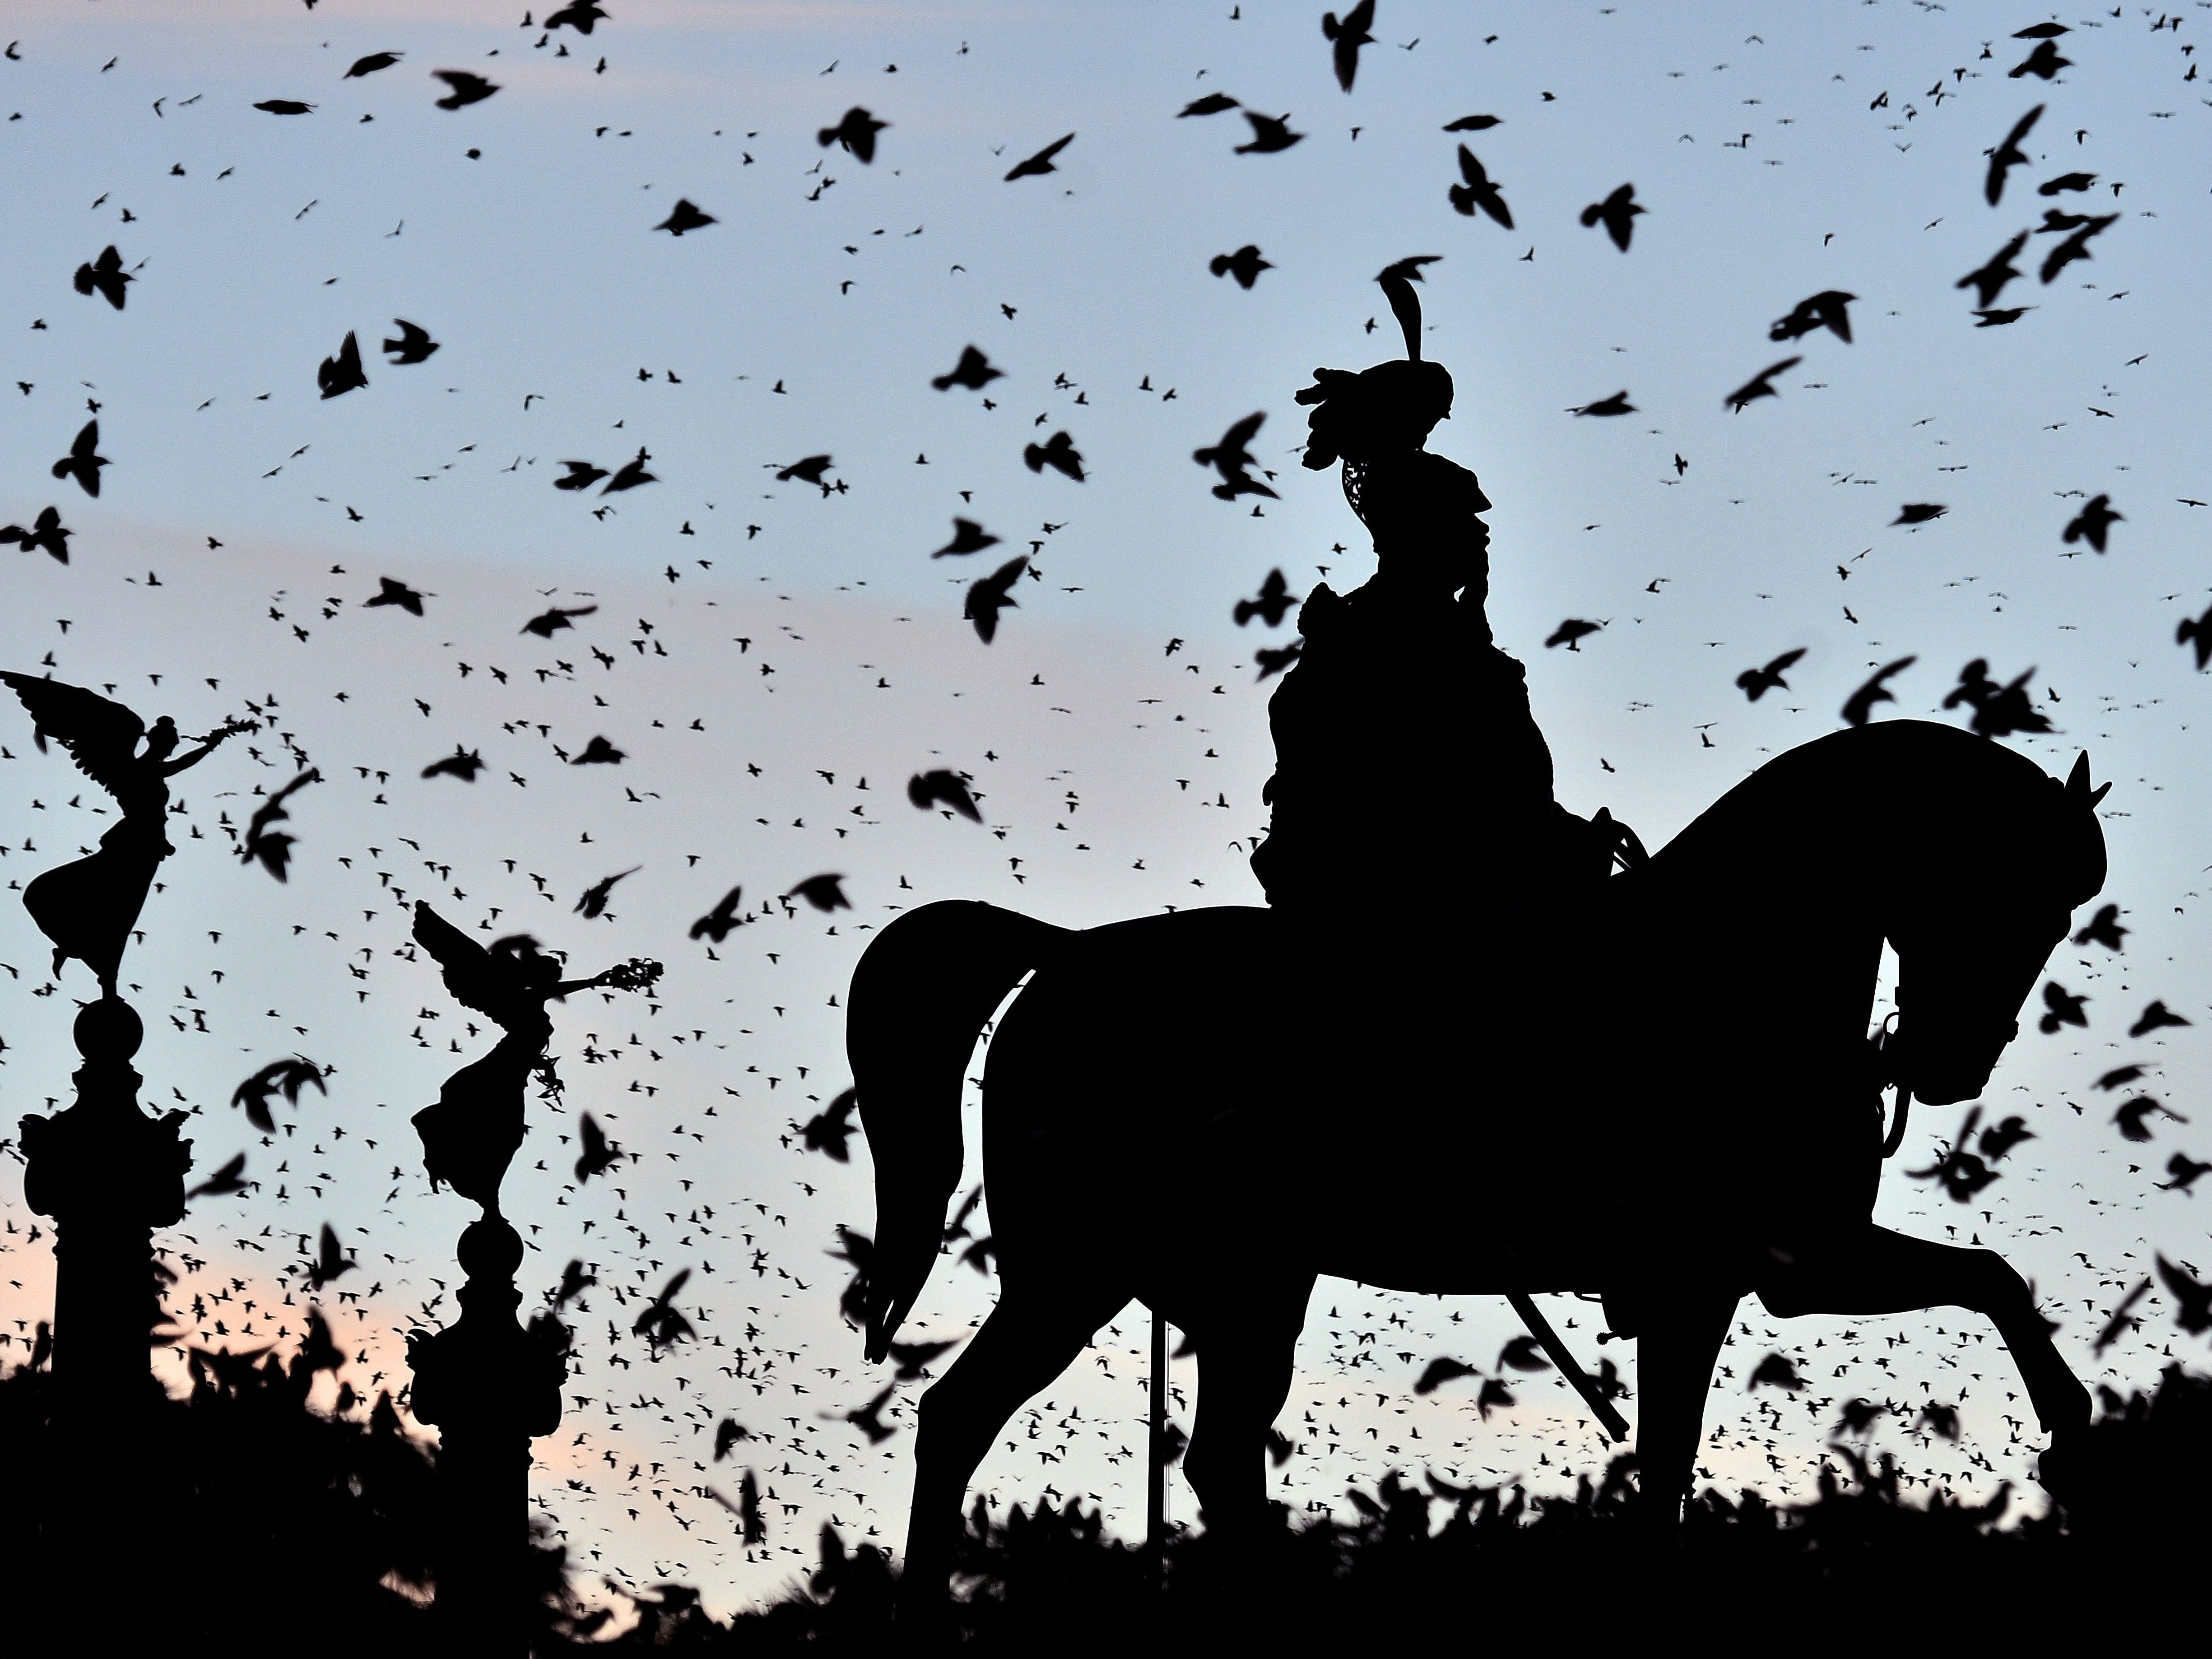 A swarm of starlings flying over the city center is pictured as the sun sets over the Altare della Patria (Unknown soldier)  monument in Rome on November 22, 2018.